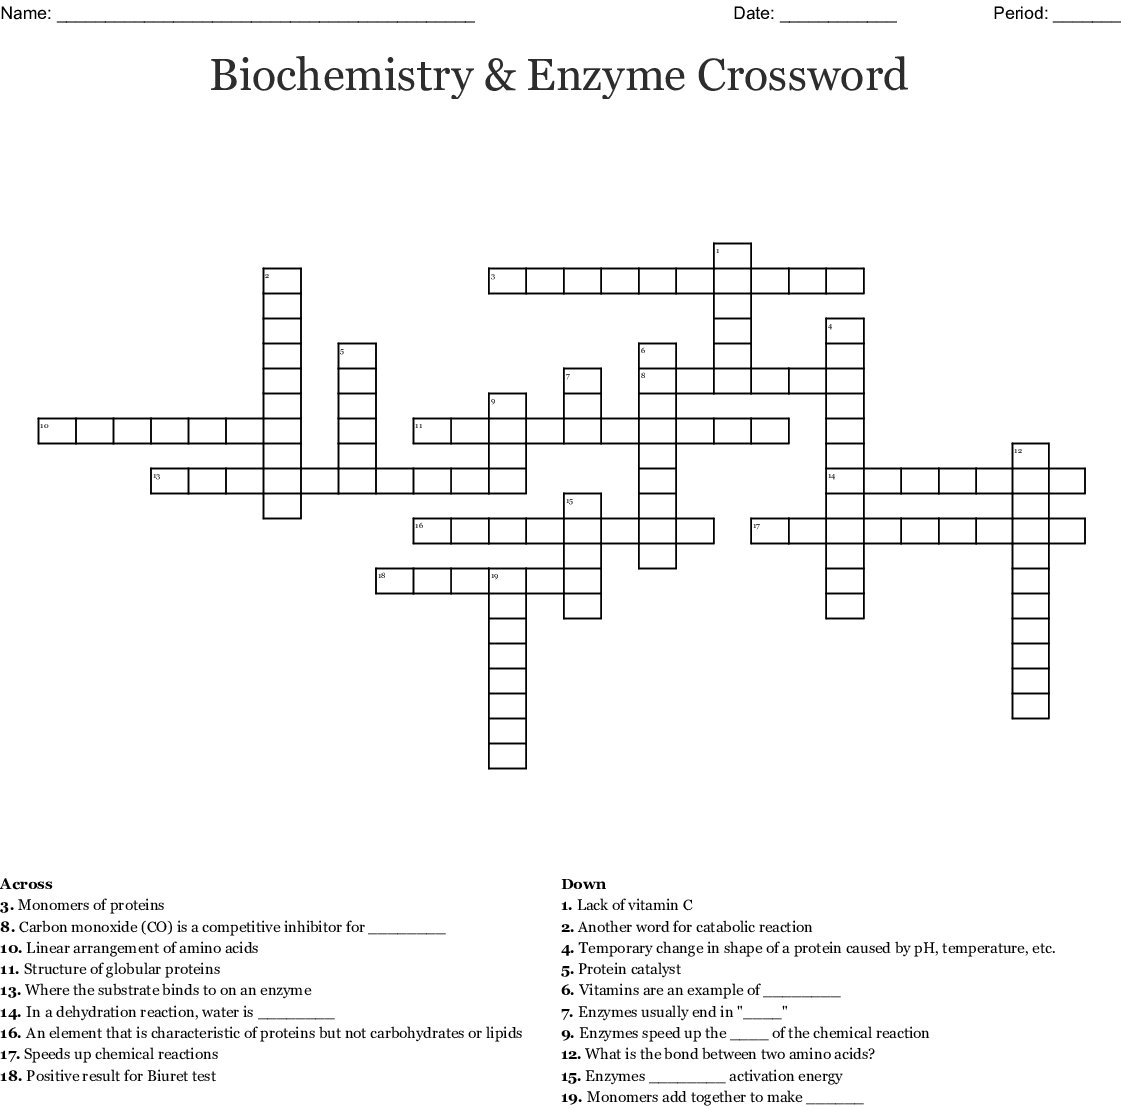 Chemical Equilibrium And Chemical Kinetics Crossword